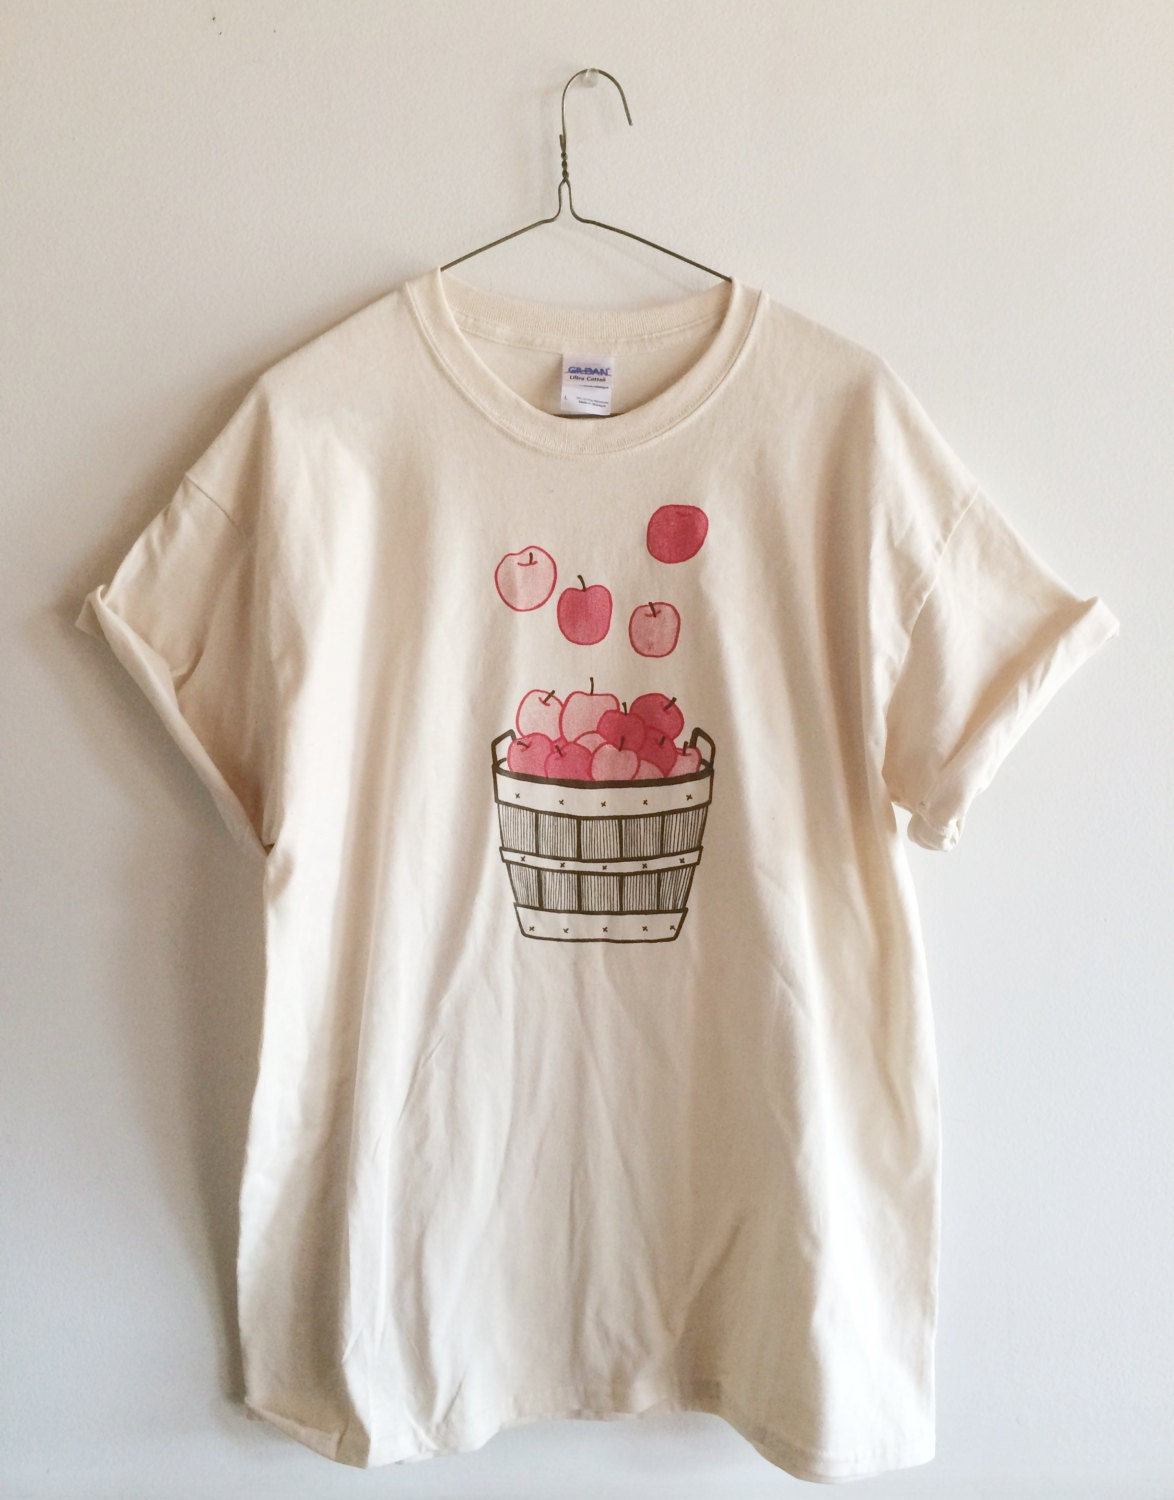 apple shirt food shirt screen printed t shirt fruit print